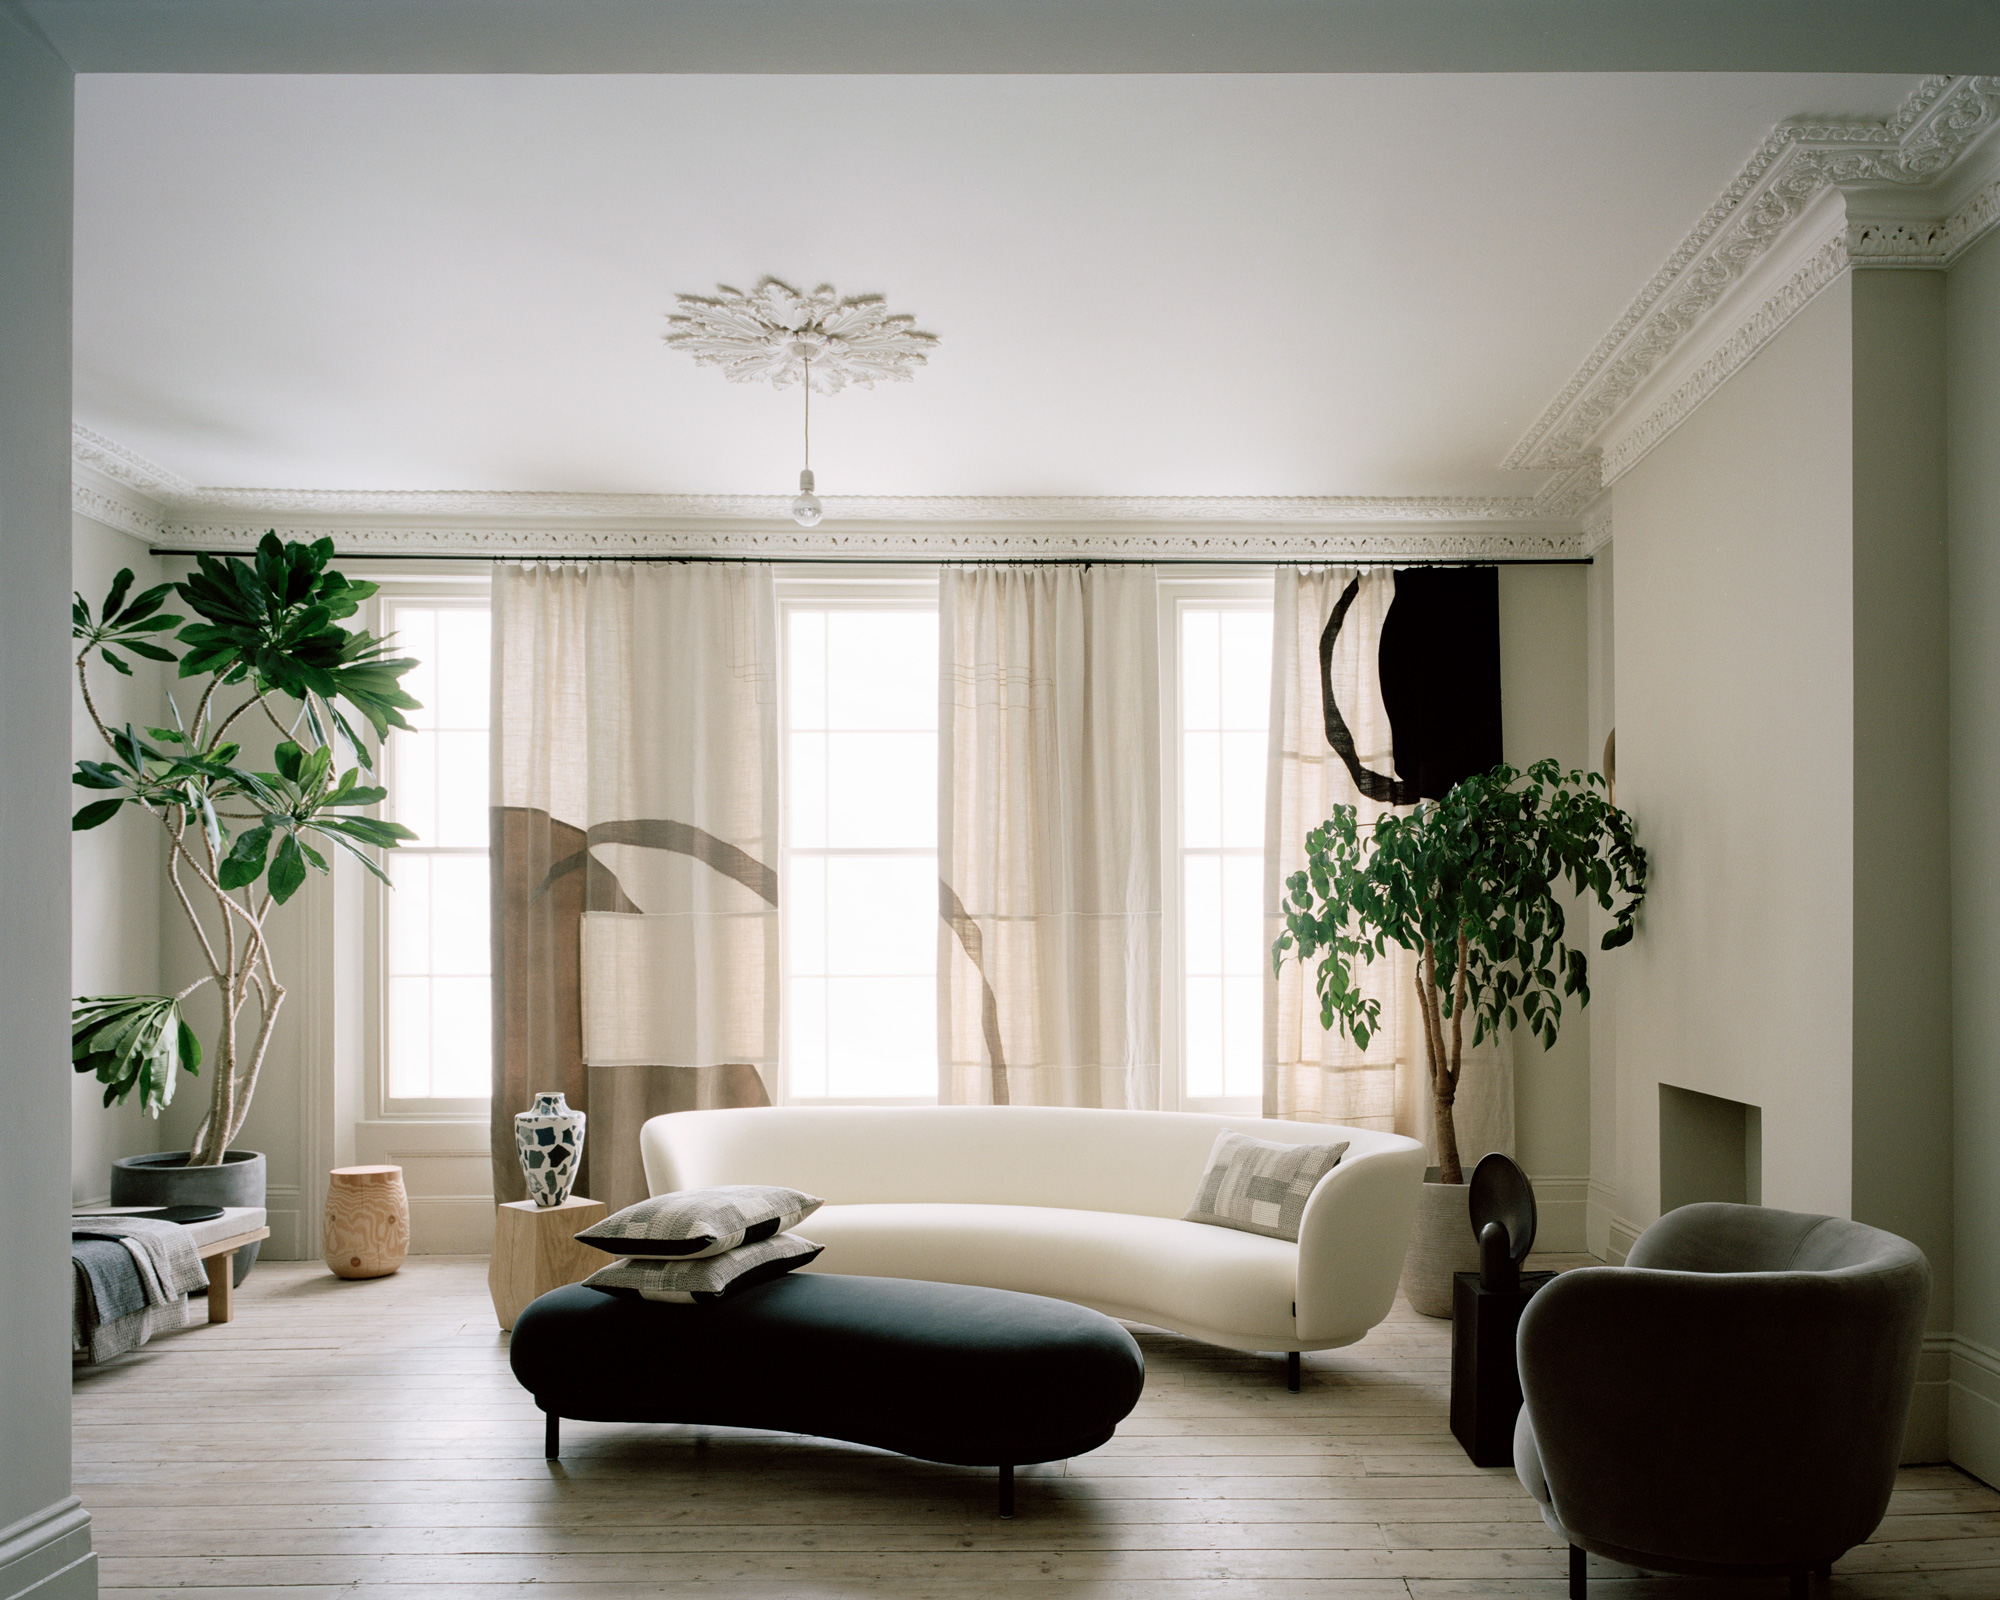 House_of_Grey_Exhibition_curved_sofa_indoor_plants.jpg